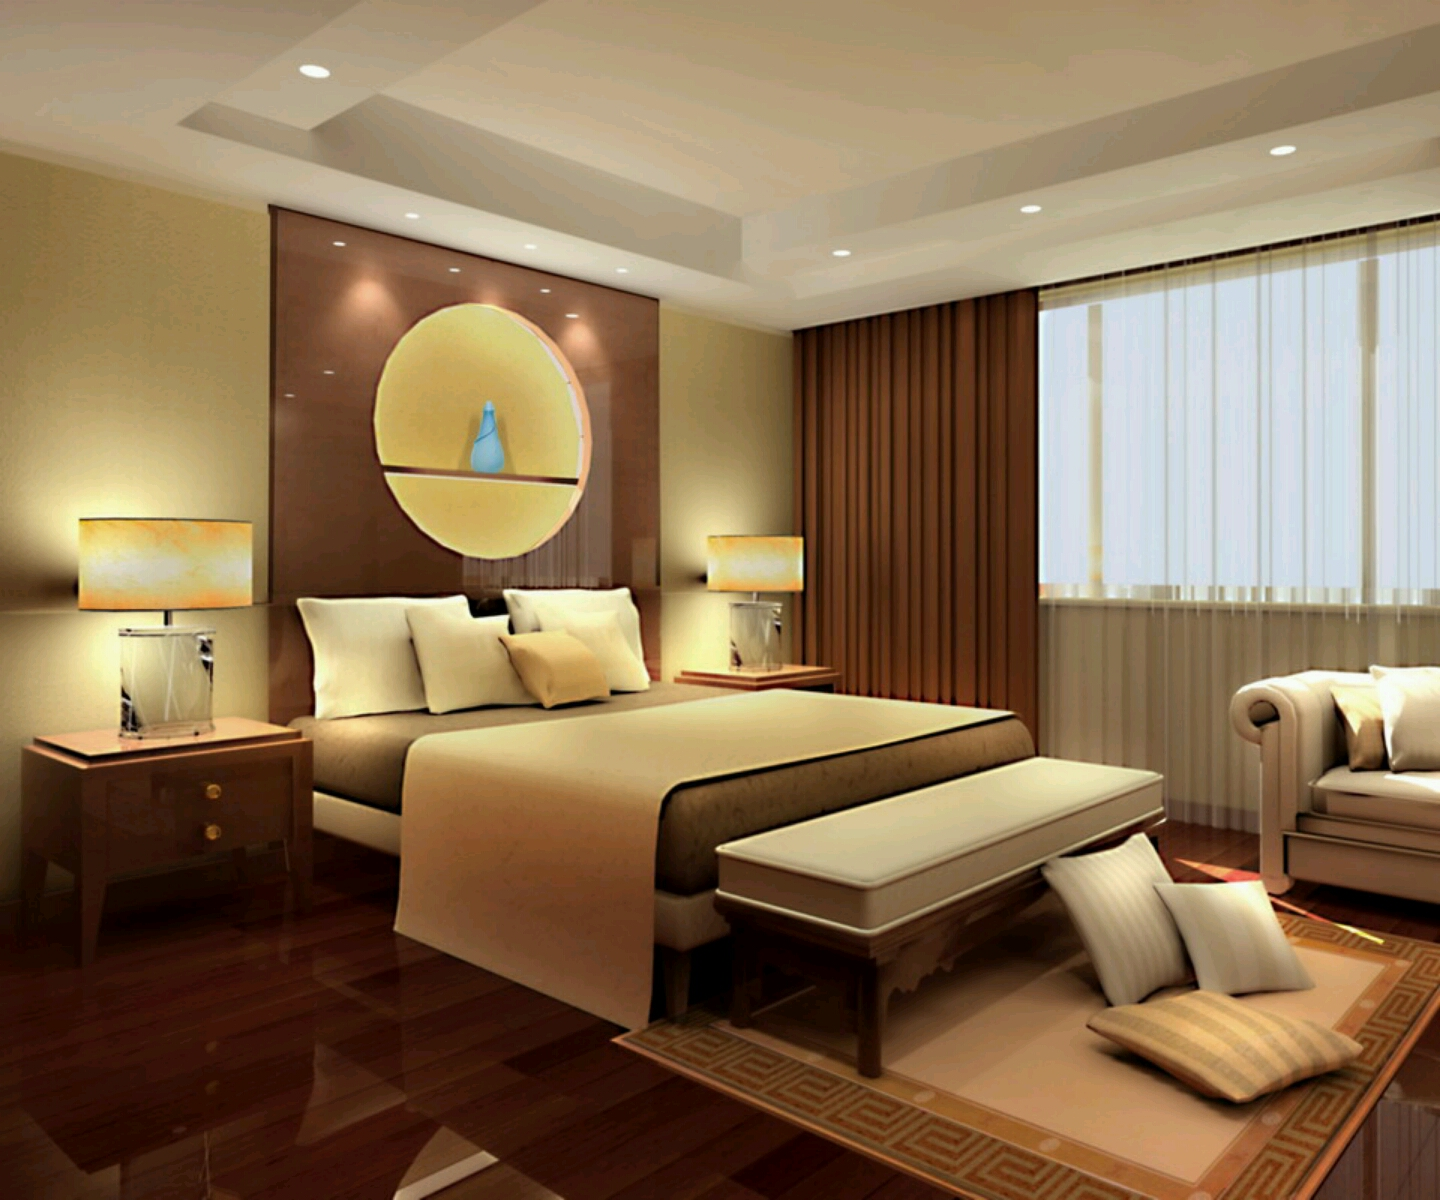 New home designs latest modern beautiful bedrooms for Bedroom modern design